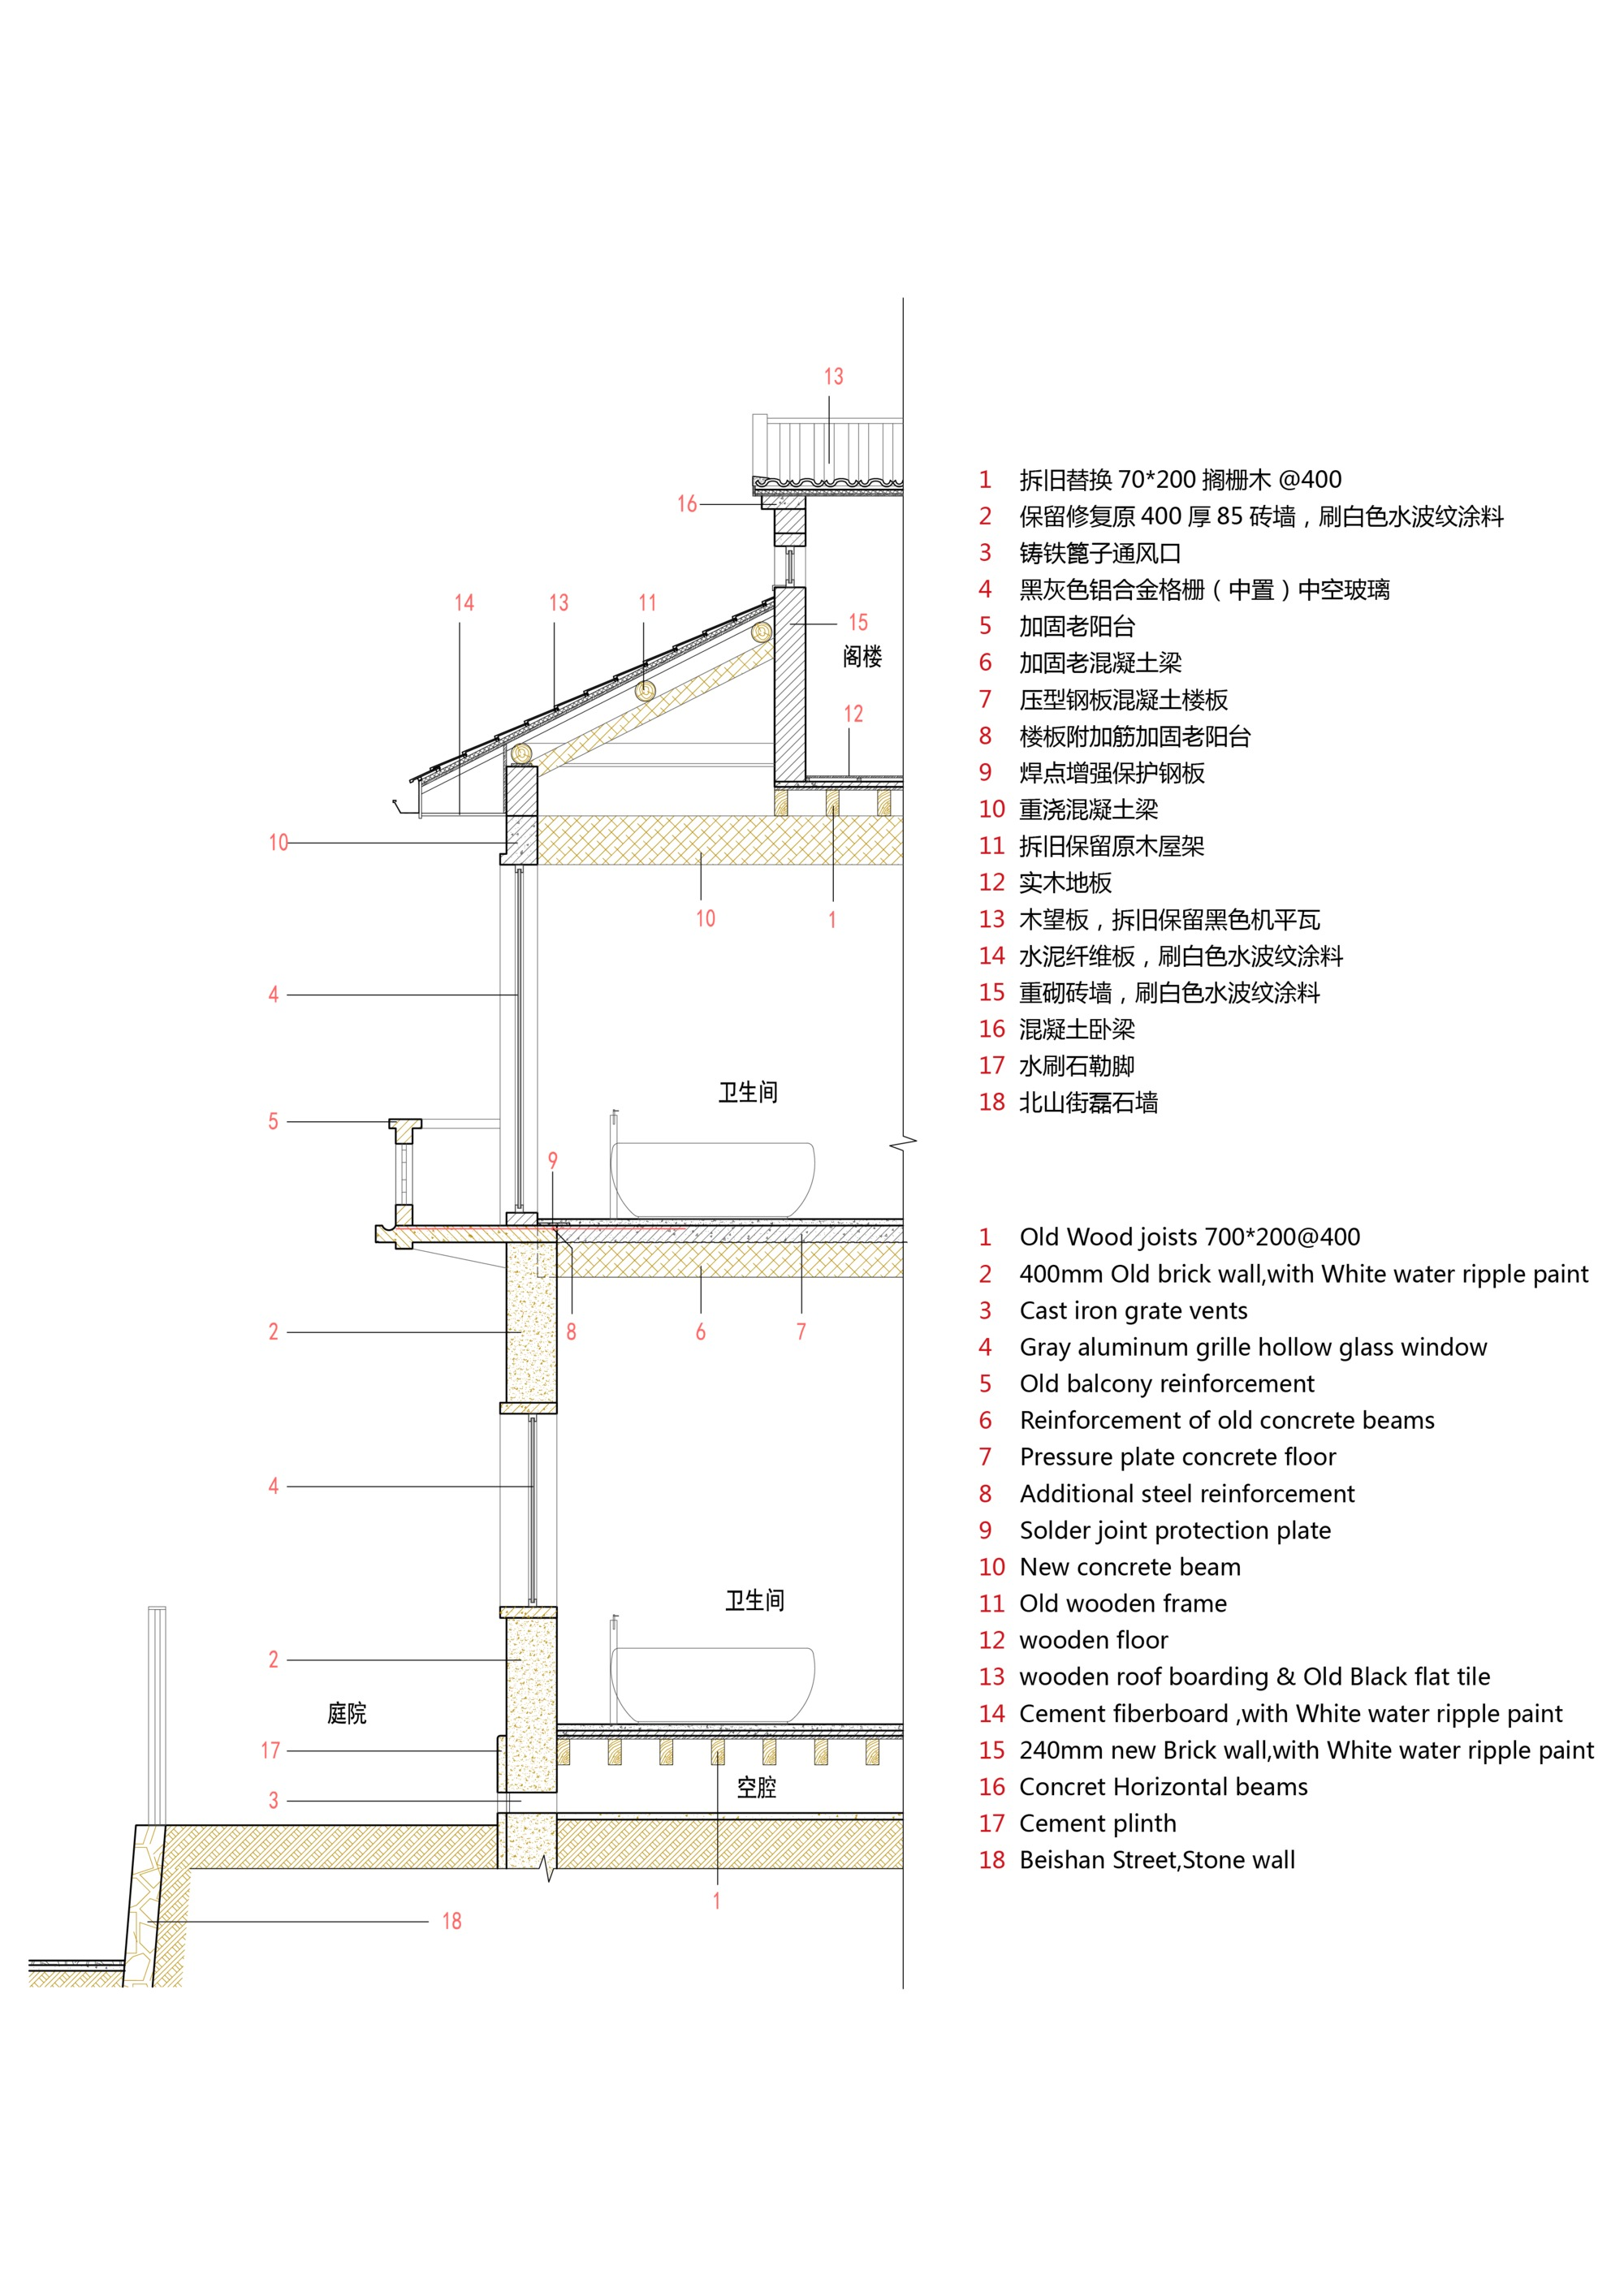 Gallery Of Space Renovation Of 69 Beishan St The Design